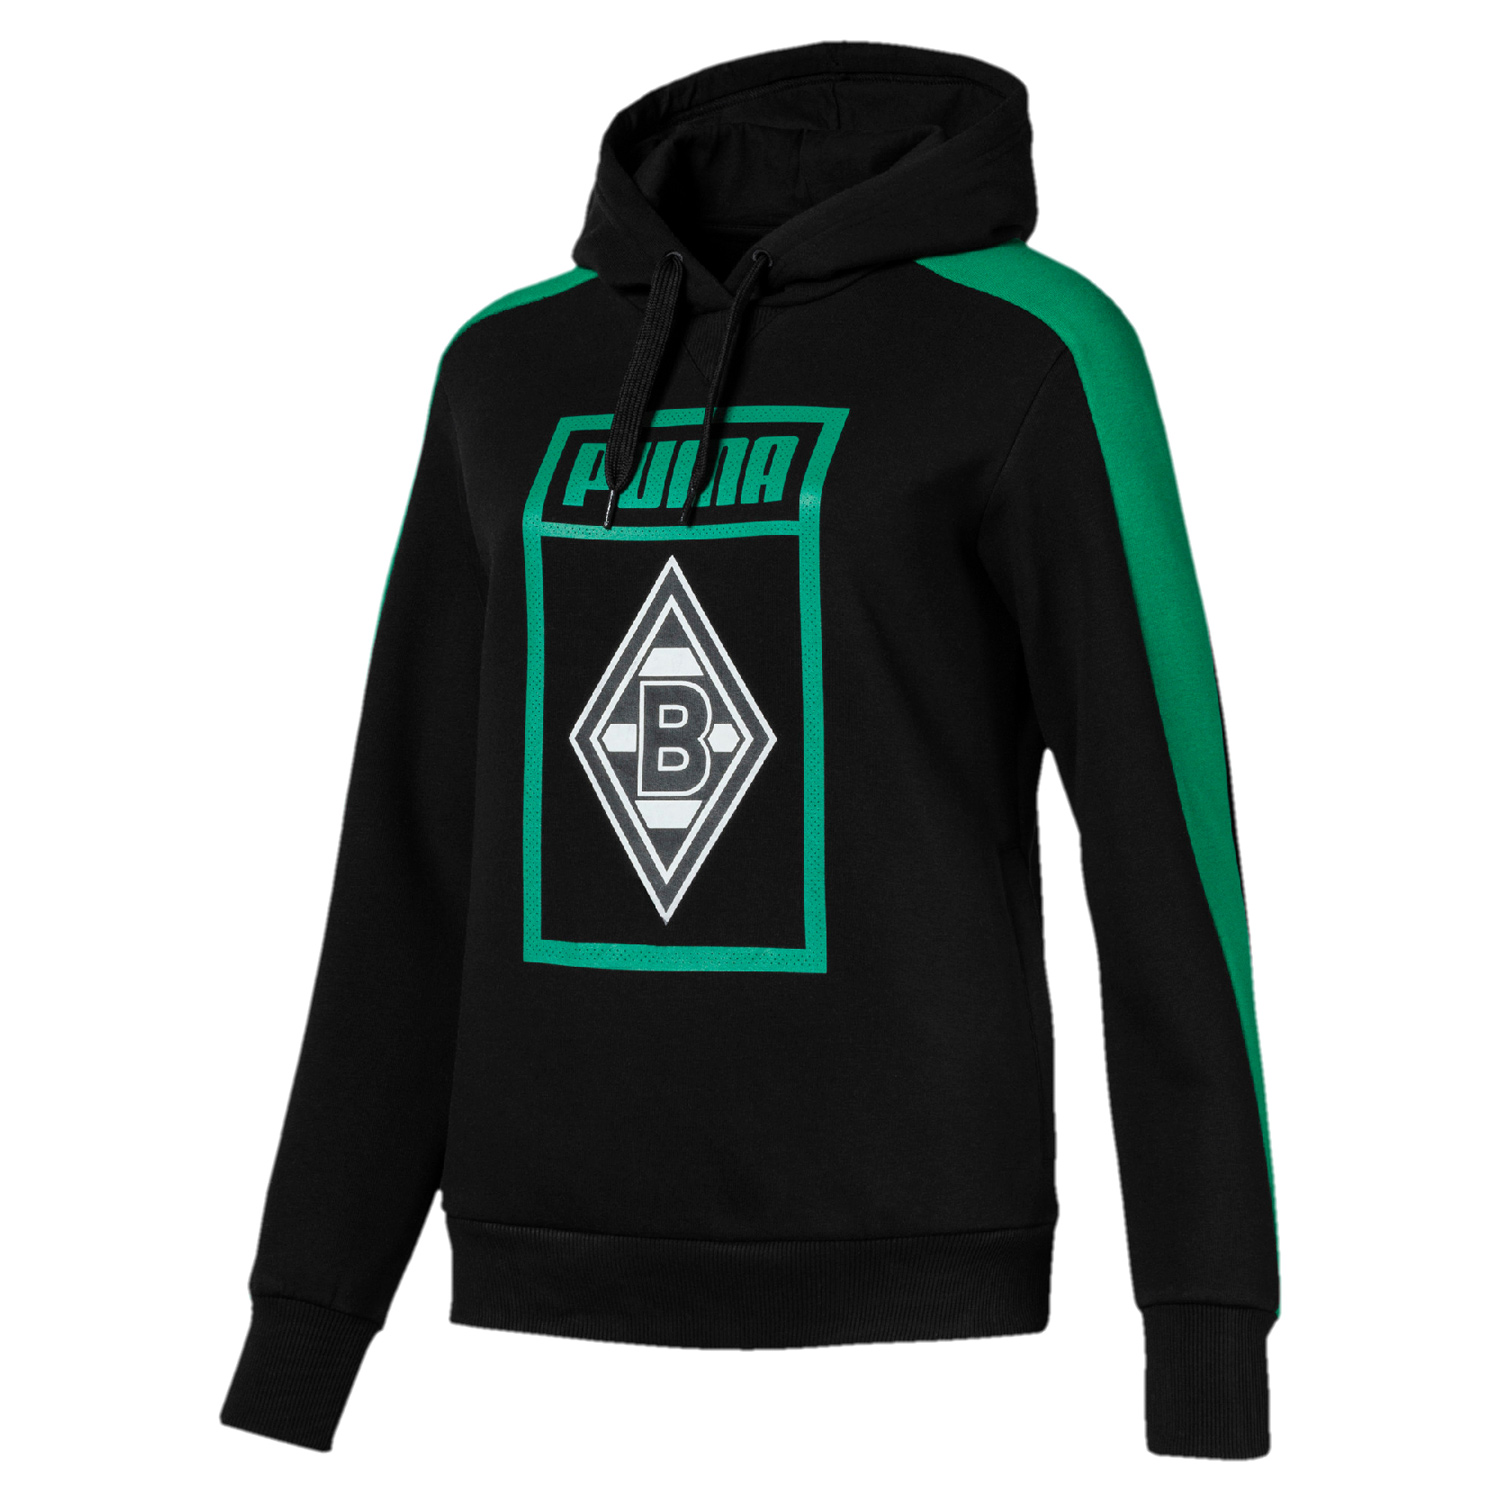 puma borussia m nchengladbach damen shoe tag hoody 754181 01 fanshop national borussia. Black Bedroom Furniture Sets. Home Design Ideas